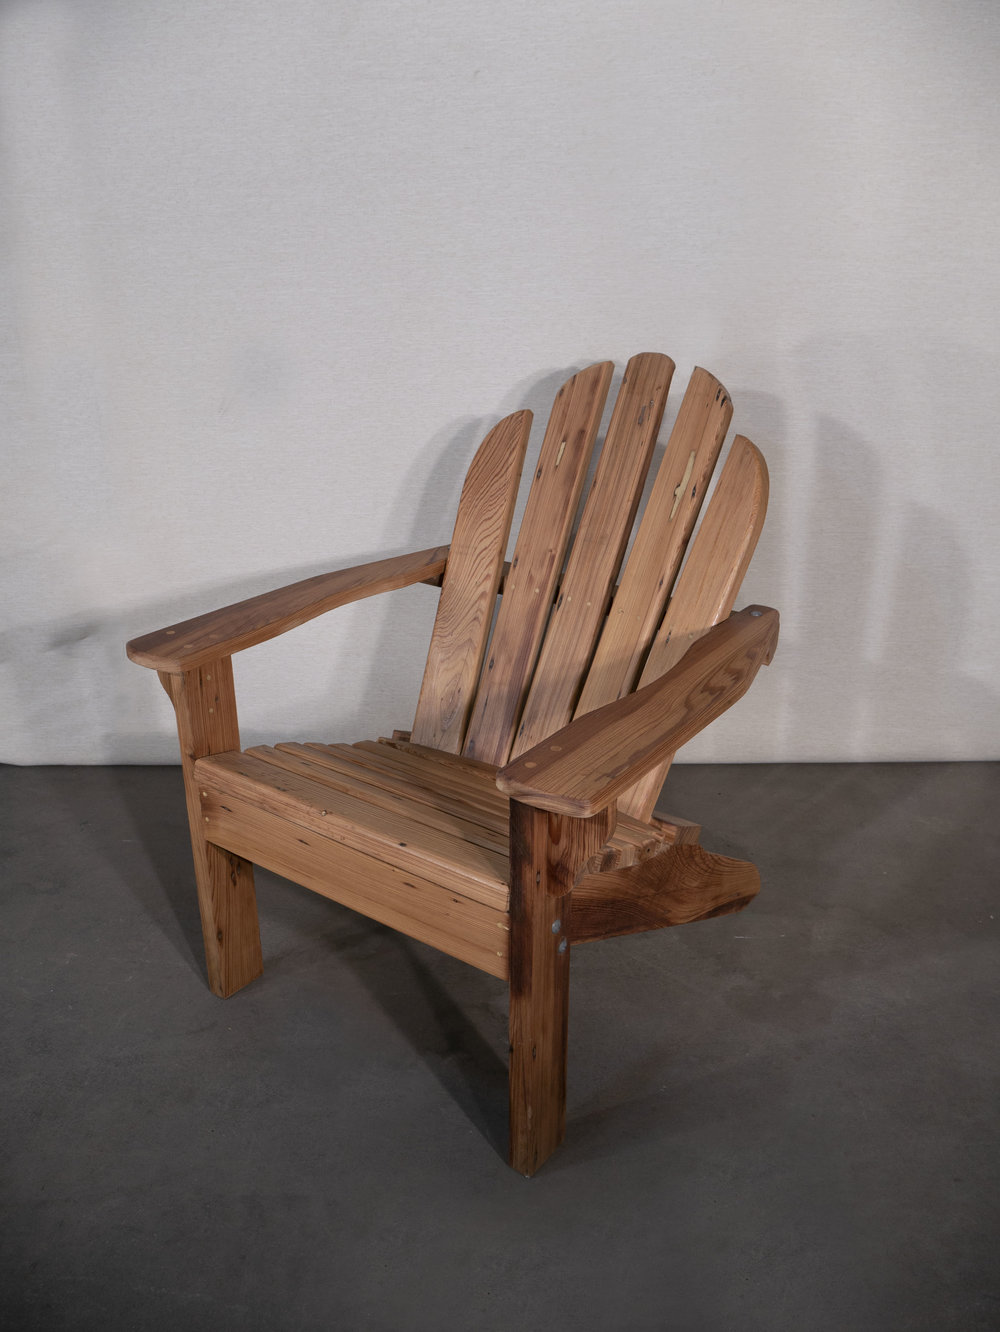 Adirondack Chair   Vivian Cahn Designs  (Vivian Cahn & Kevin Vicknair)  Furniture